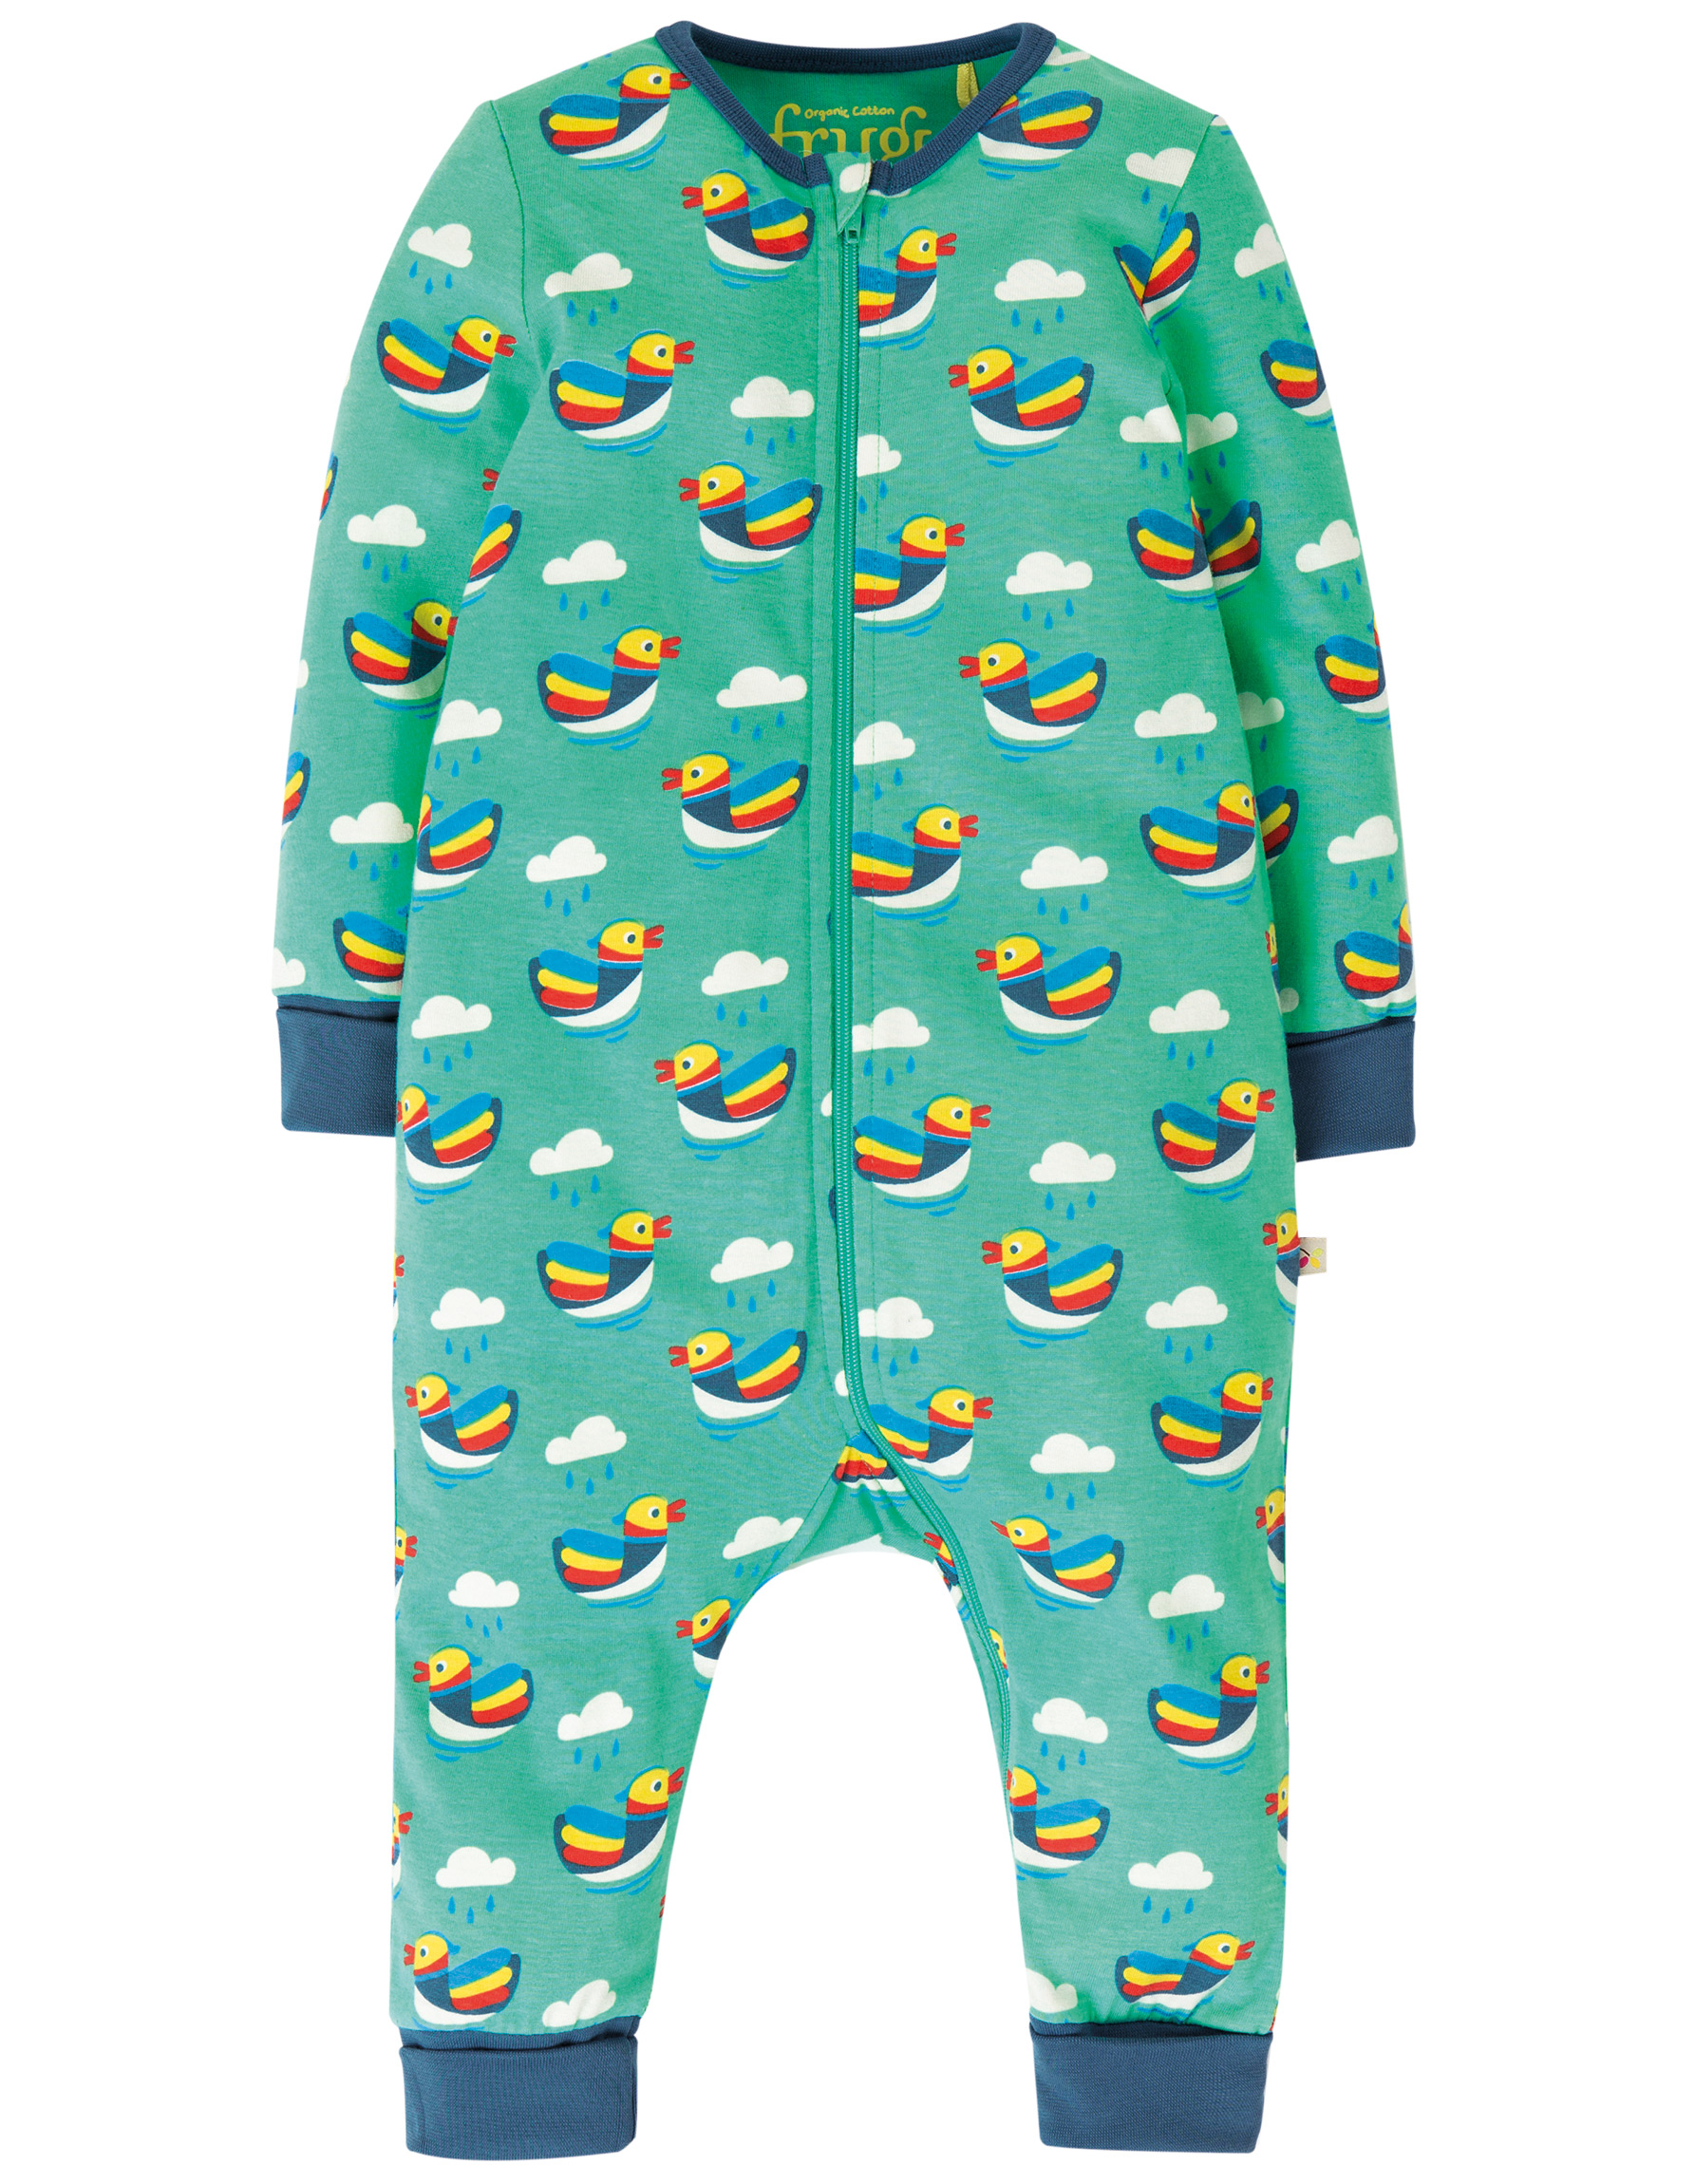 Frugi - Summer zip babygrow - Mandarin Ducks